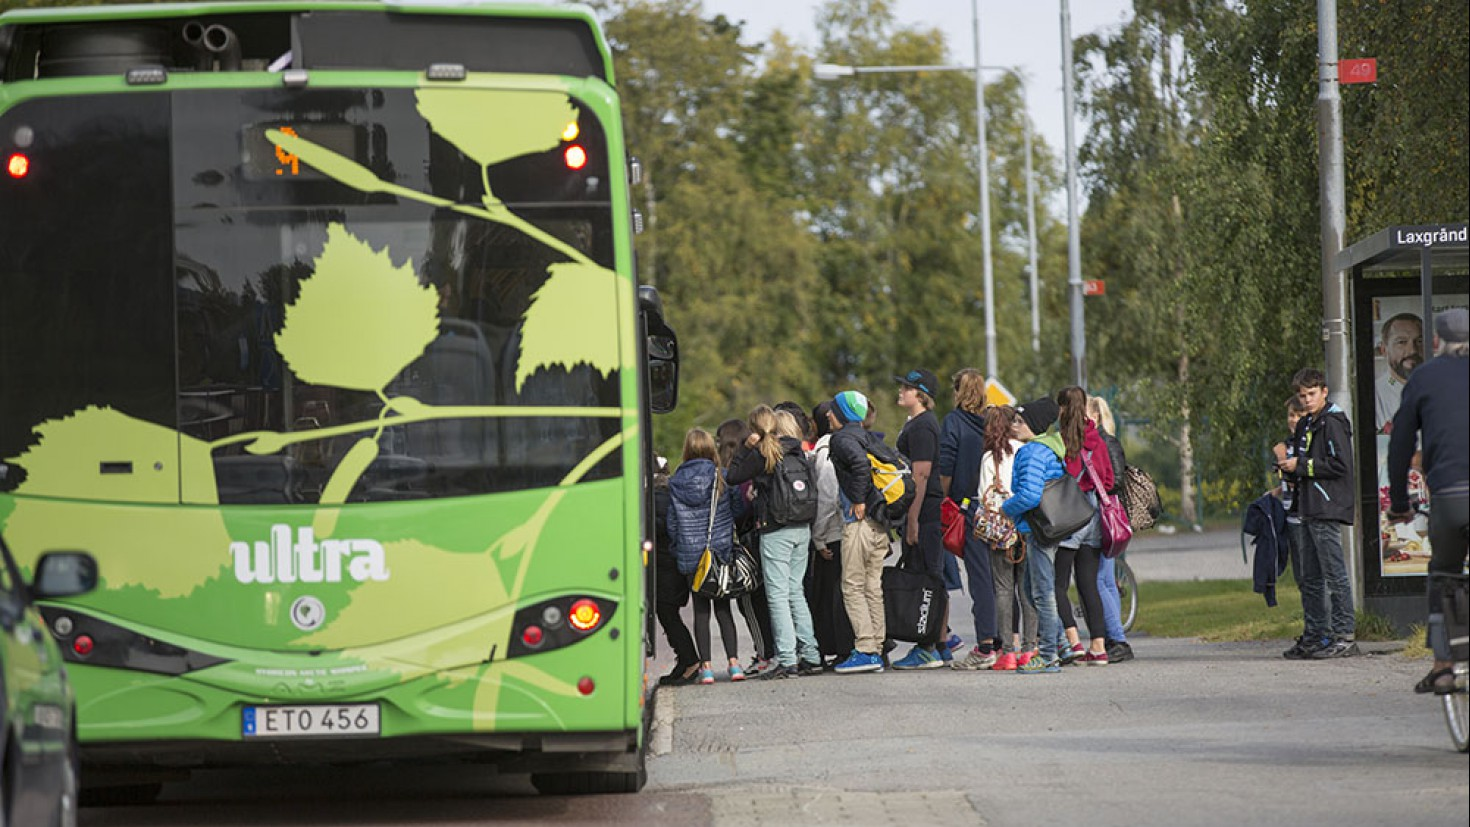 ultrafast-charging Electric buses in umeå financed by a green bond. Foto: Hybricon bus systems